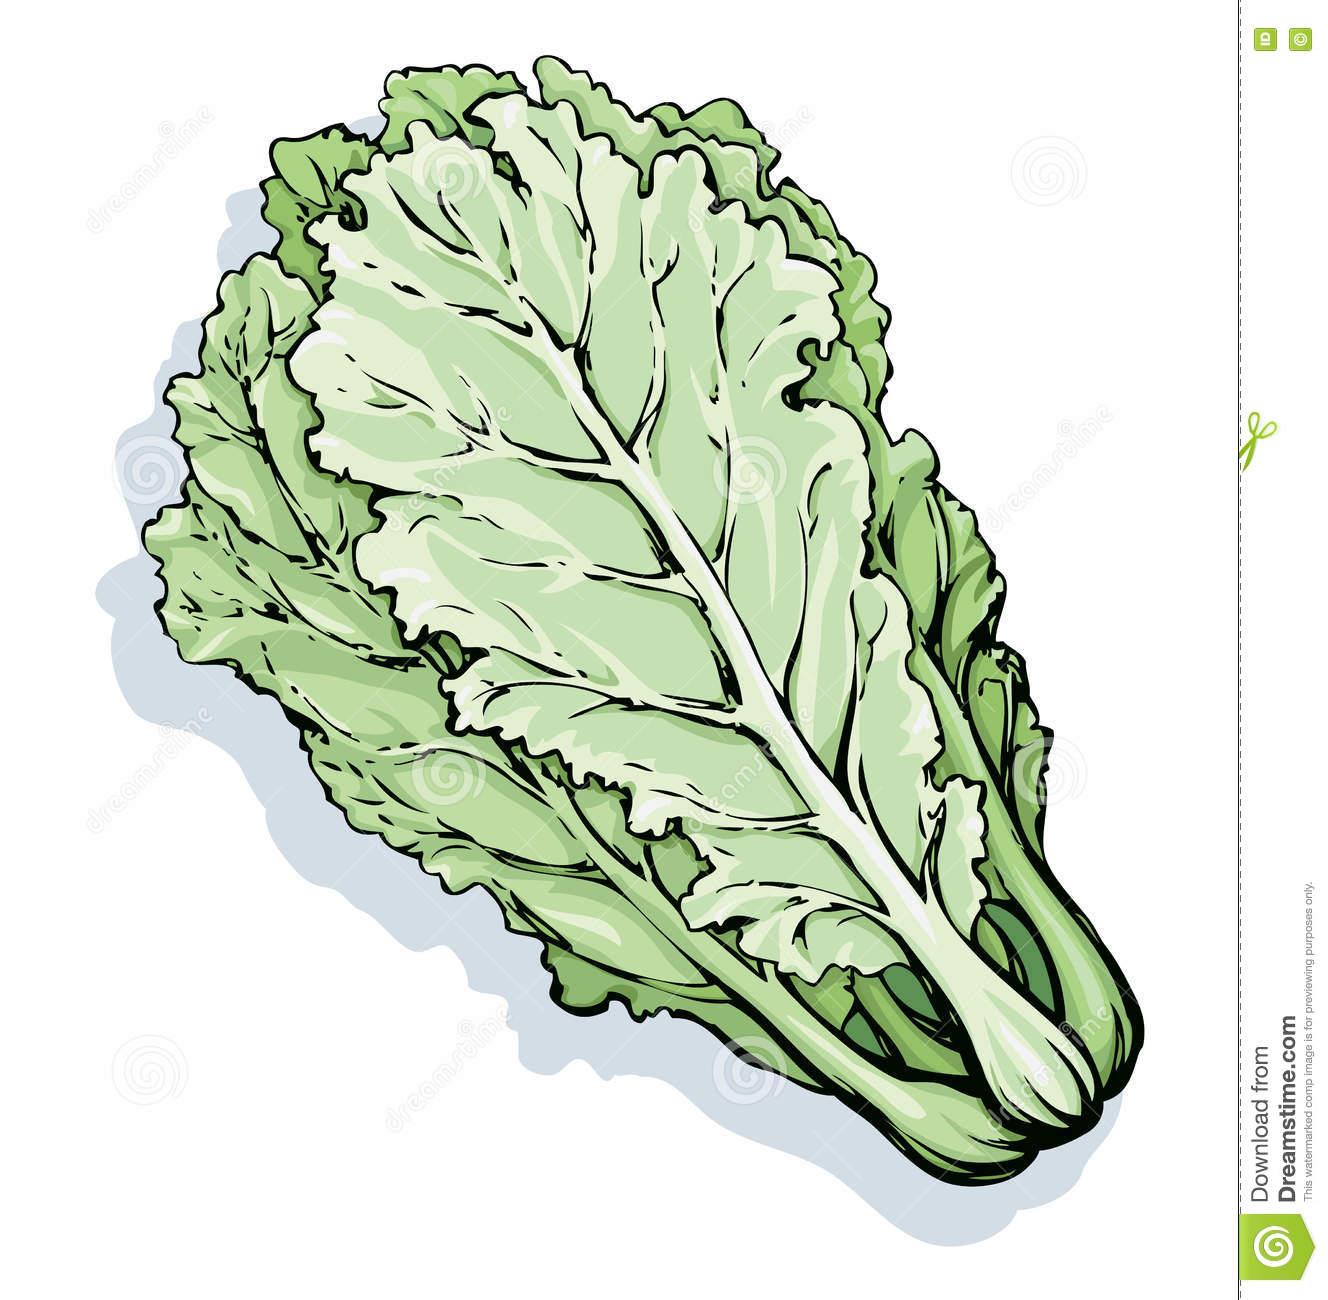 Chinese Cabbage. Vector Drawing Stock Vector - Image: 71909313